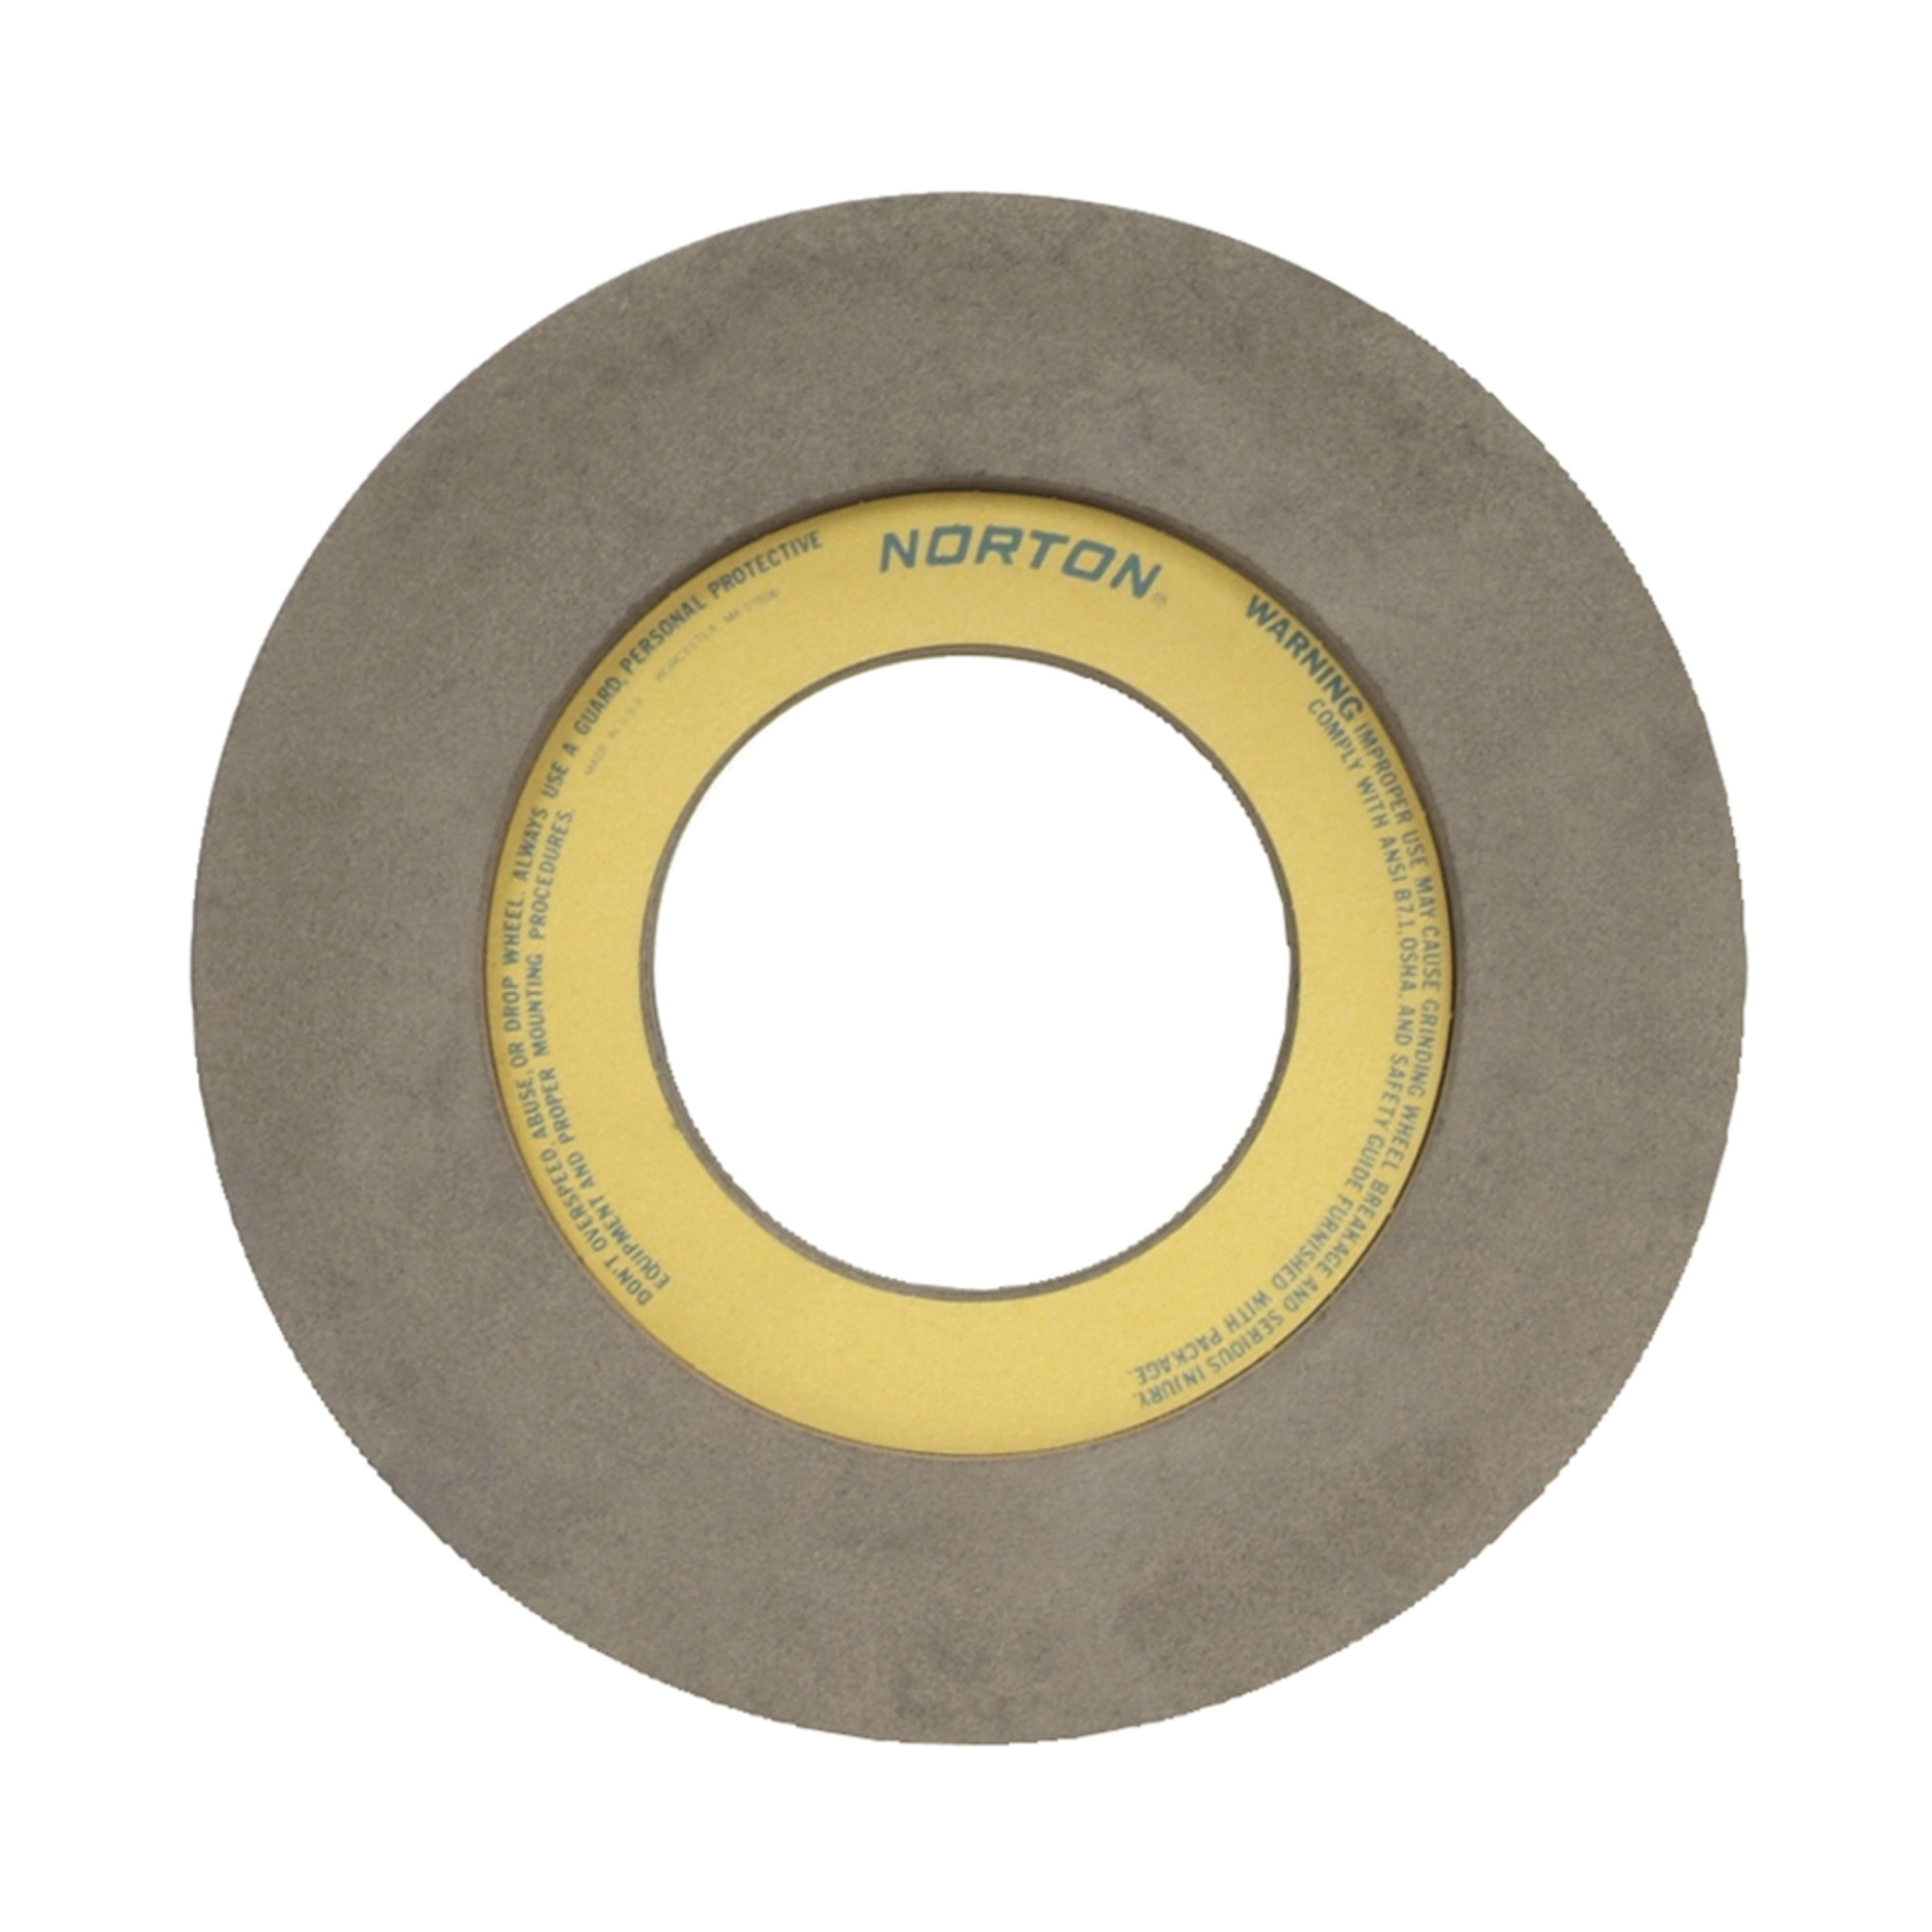 Norton® 66253222846 57A Centerless Feed Wheel, 12 in Dia x 6 in W, 5 in Hole, Type 7, 80 Grit